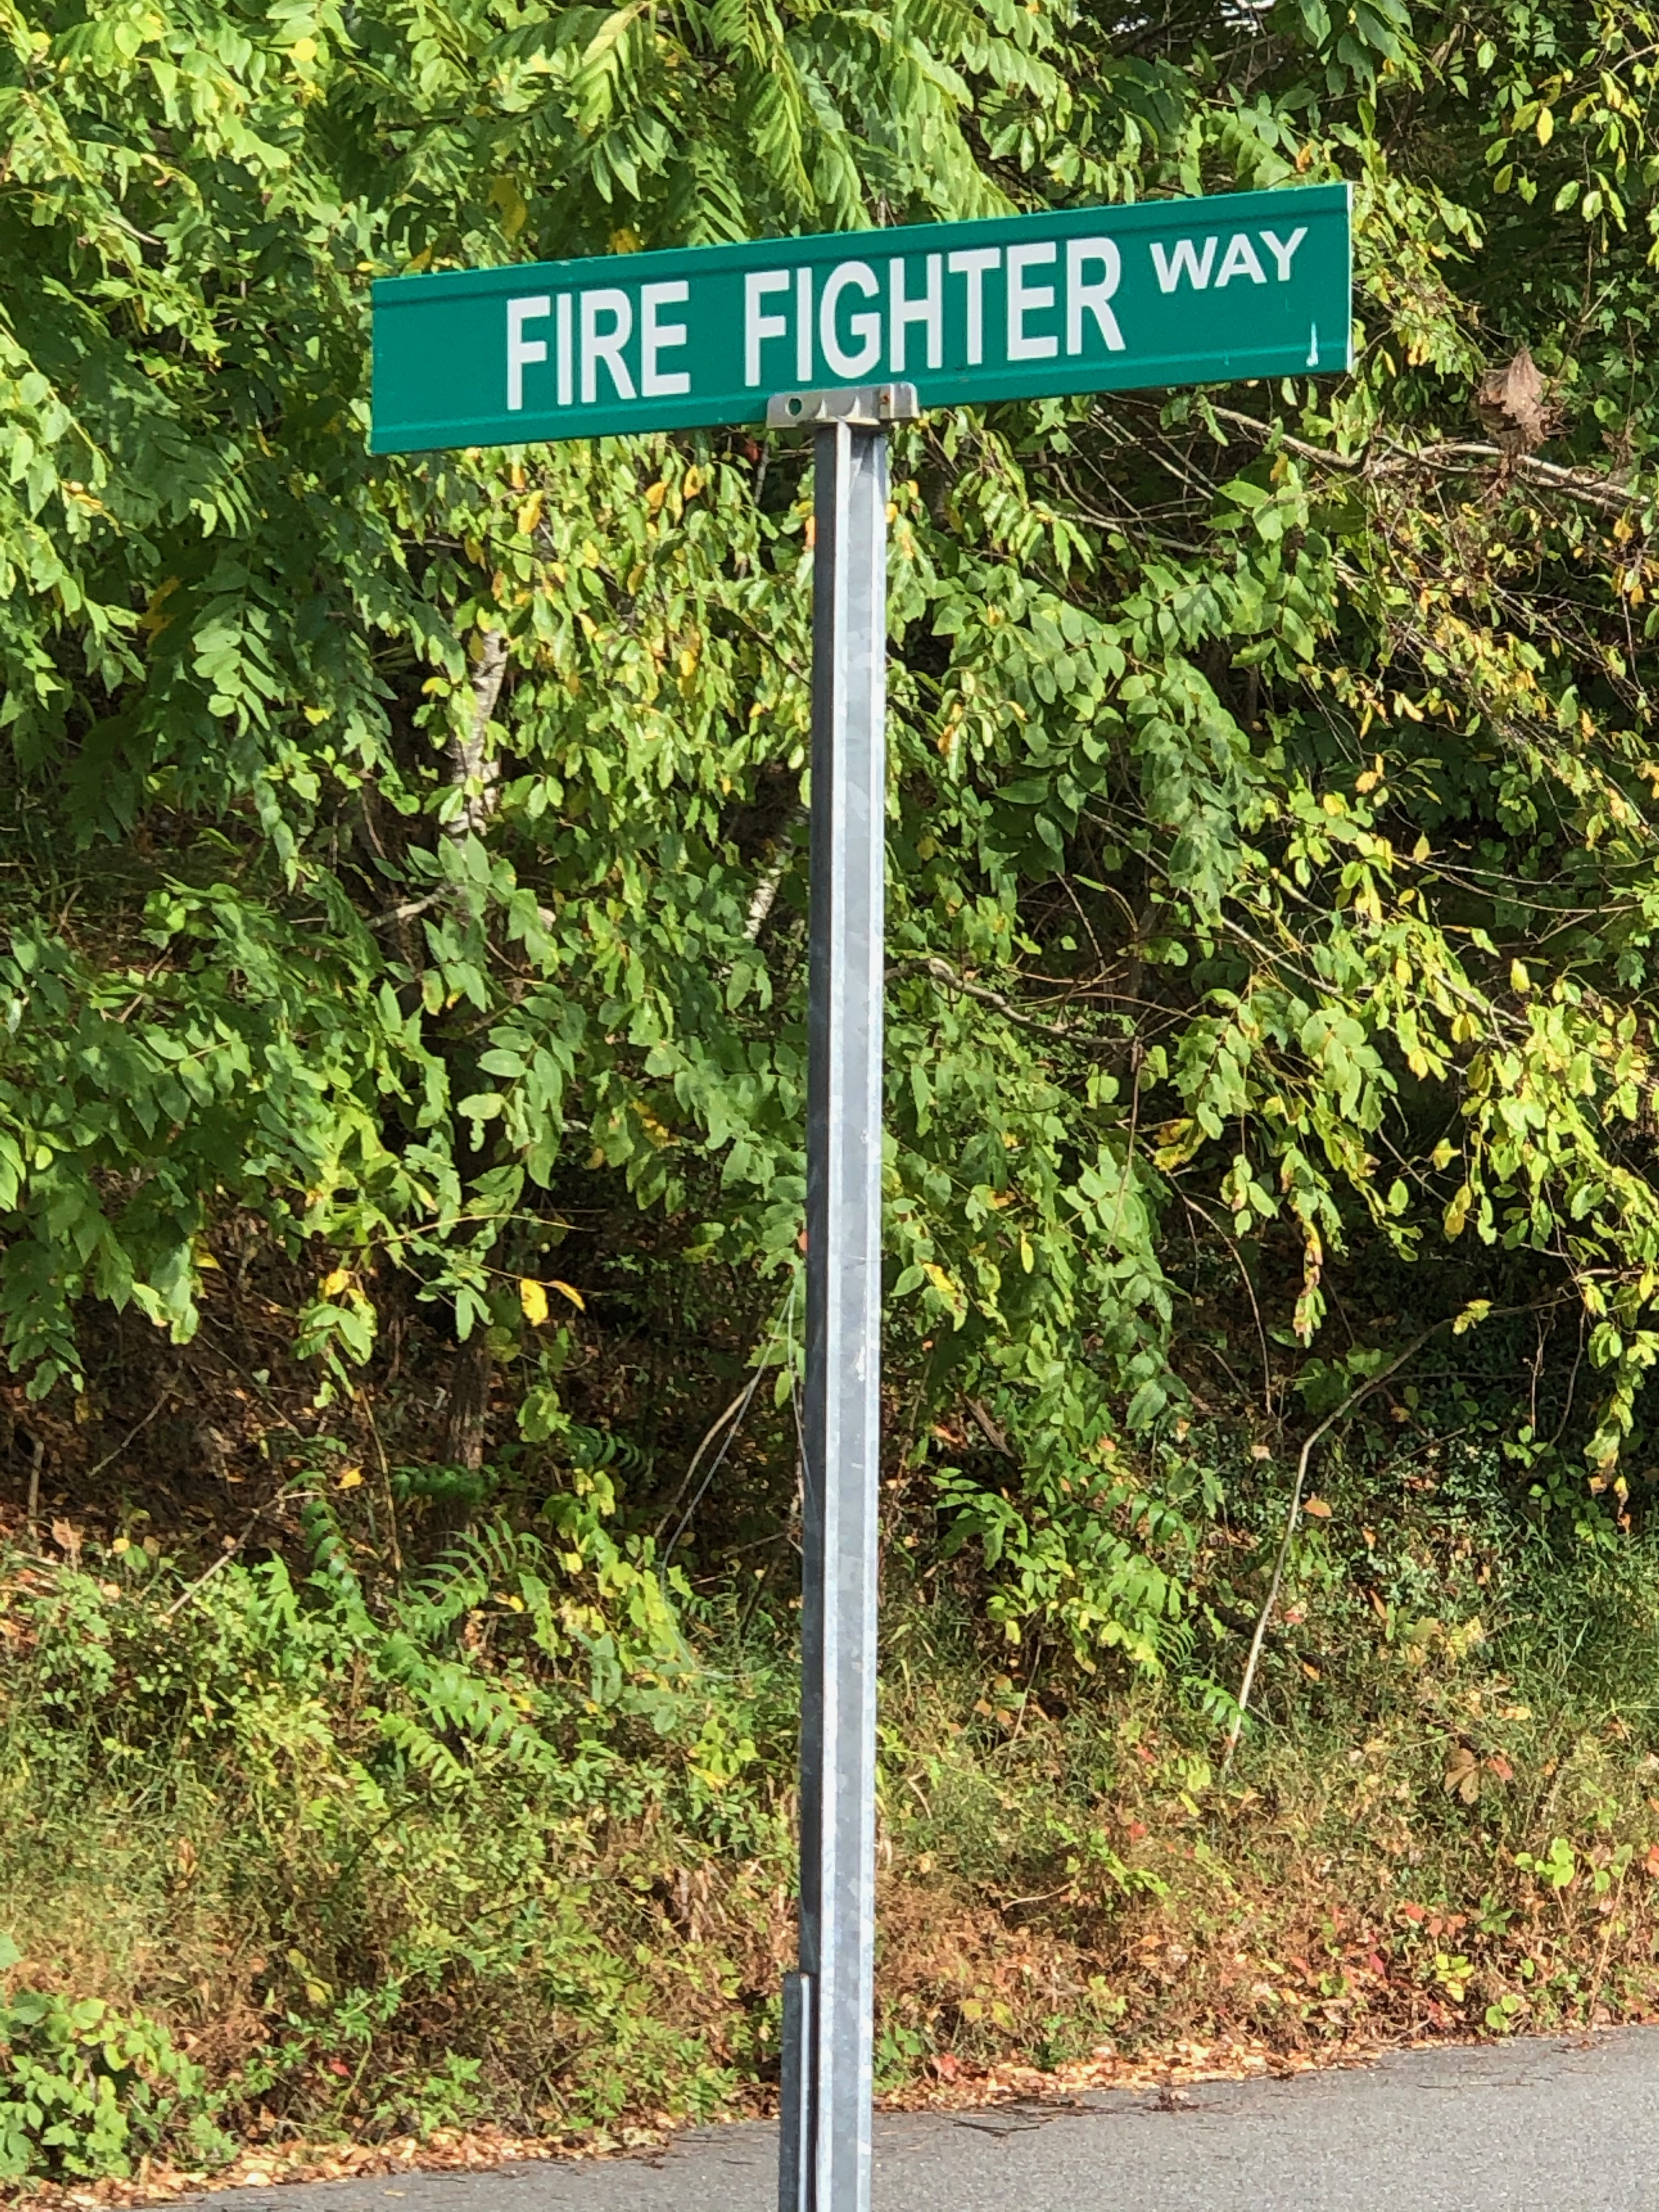 100 Firefighter Way sign